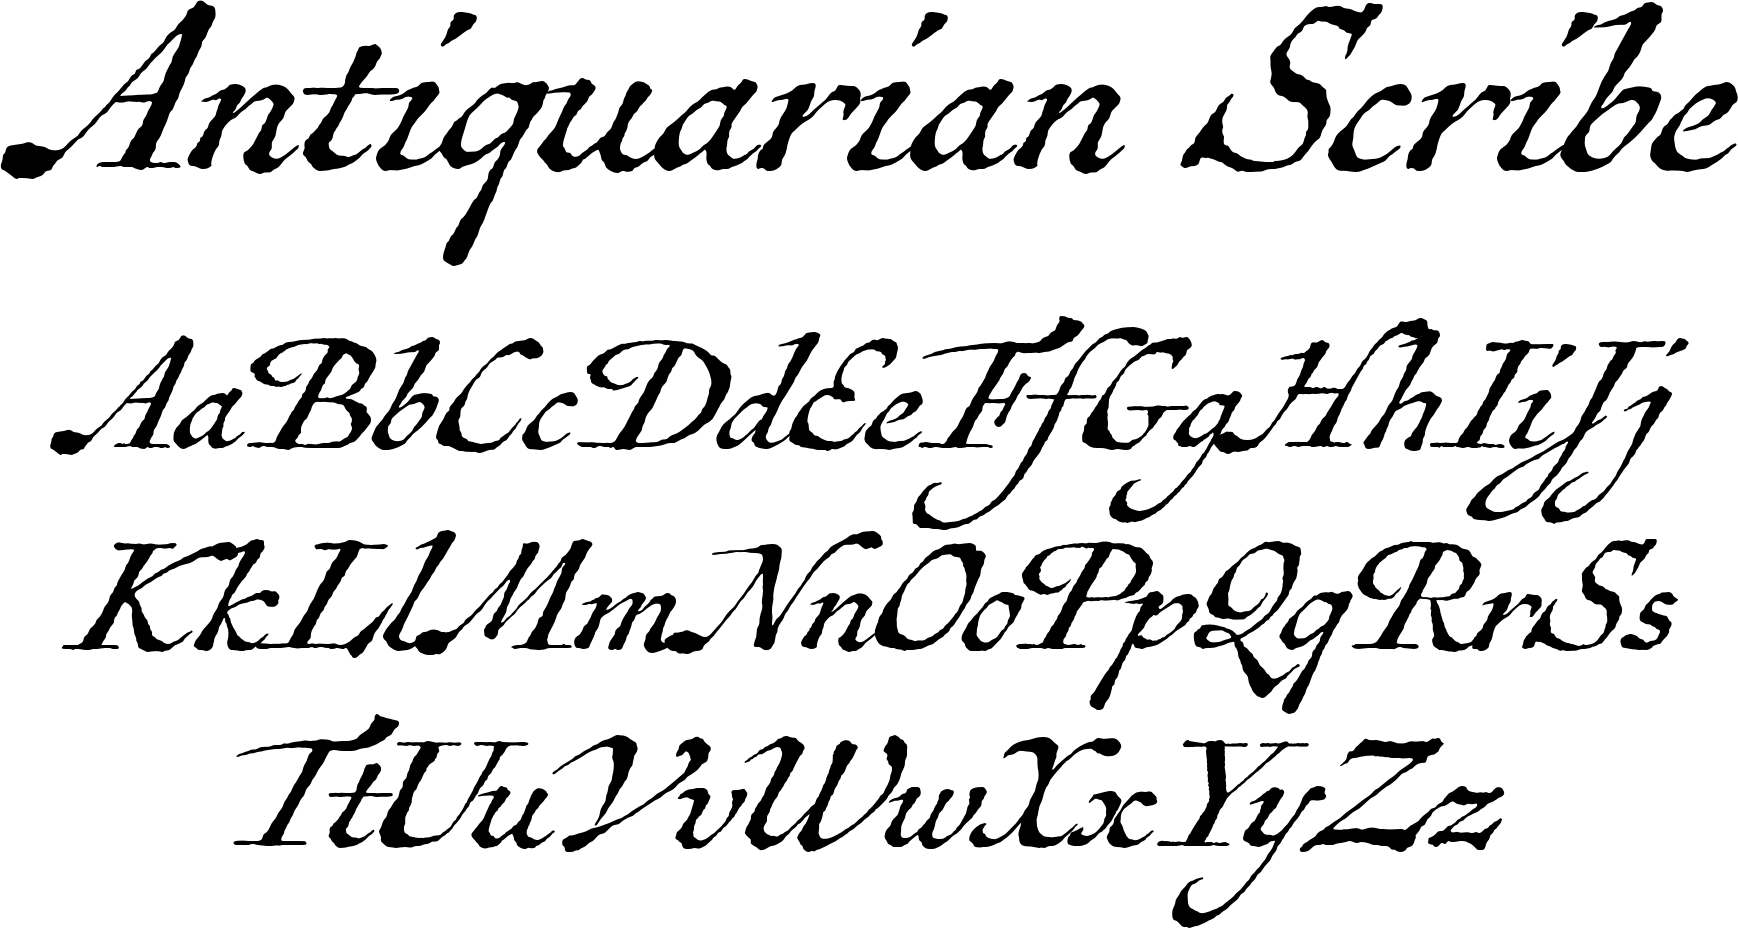 Antiquarian Scribe Font A Few Years Ago At An Antique Book Shop